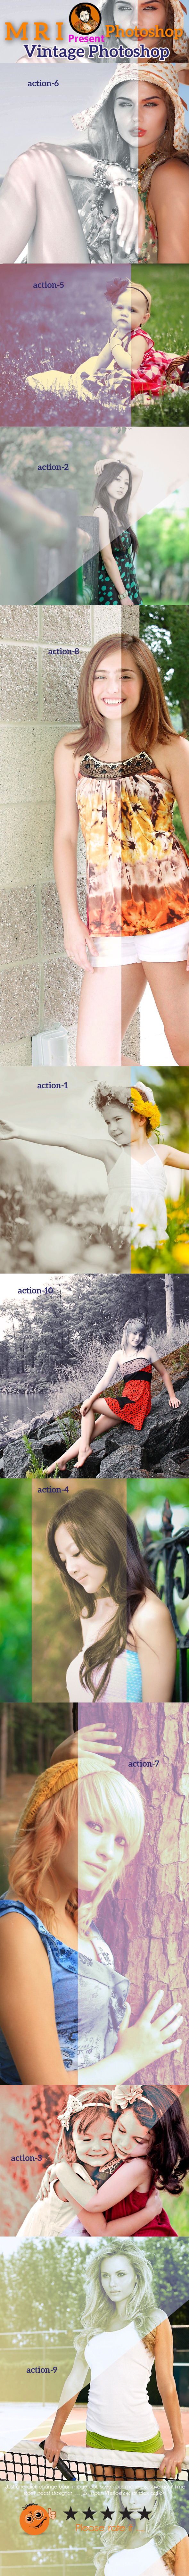 Vintage Photoshop - Photo Effects Actions